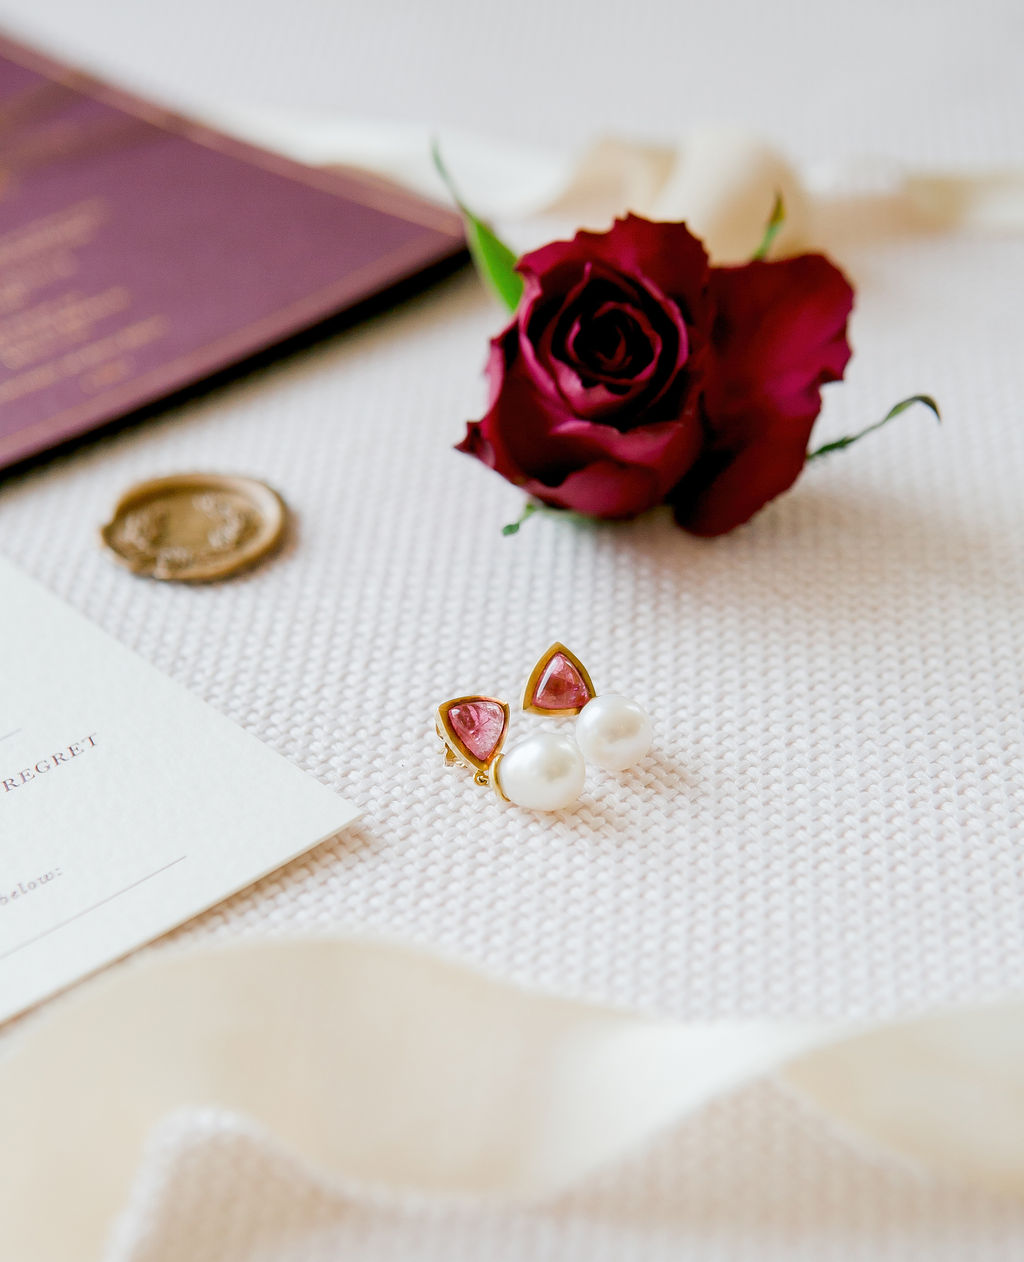 stoke_place_luxury_wedding_stationery_deep_red_gold_foil_ink_wax_seal_calligraphy_14.jpg